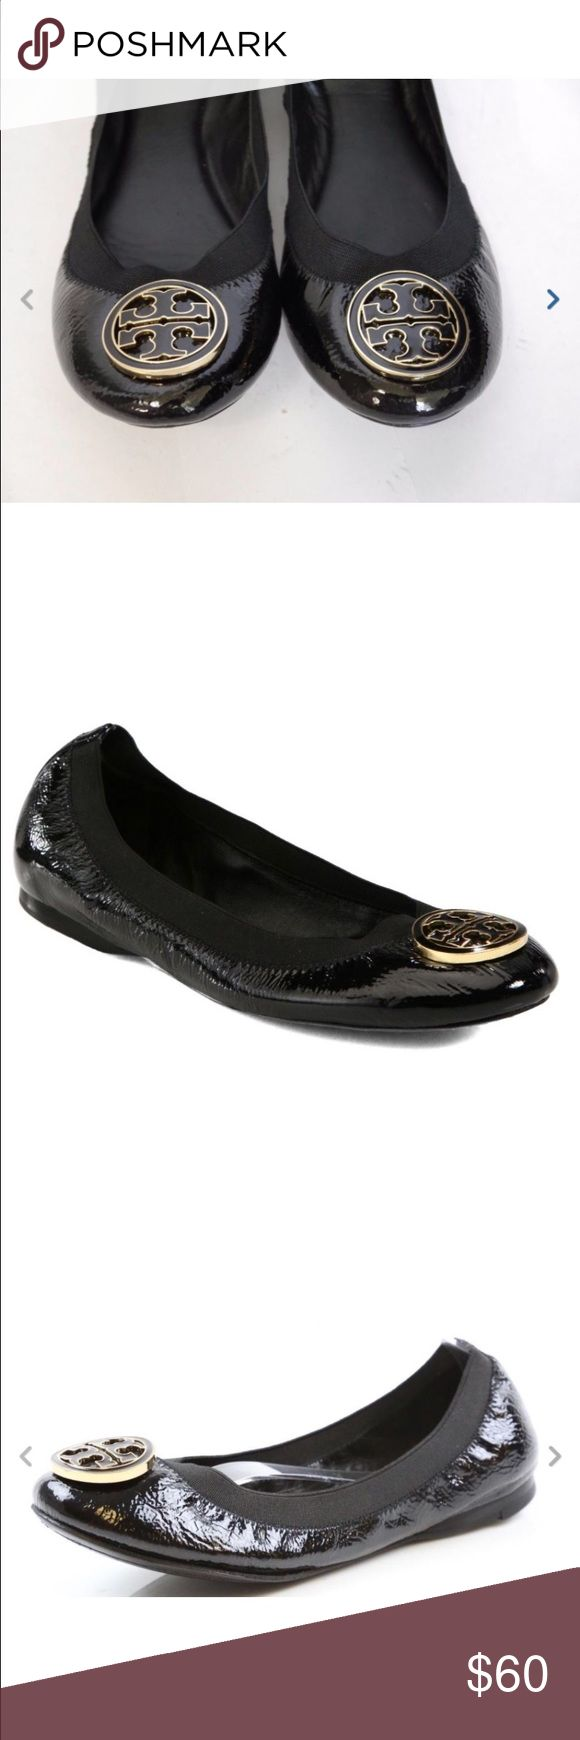 Tori Burch 7.5M ballet flat Black patent leather ballet flats with gold and black signature logo - only worn once or twice! Tory Burch Shoes Flats & Loafers